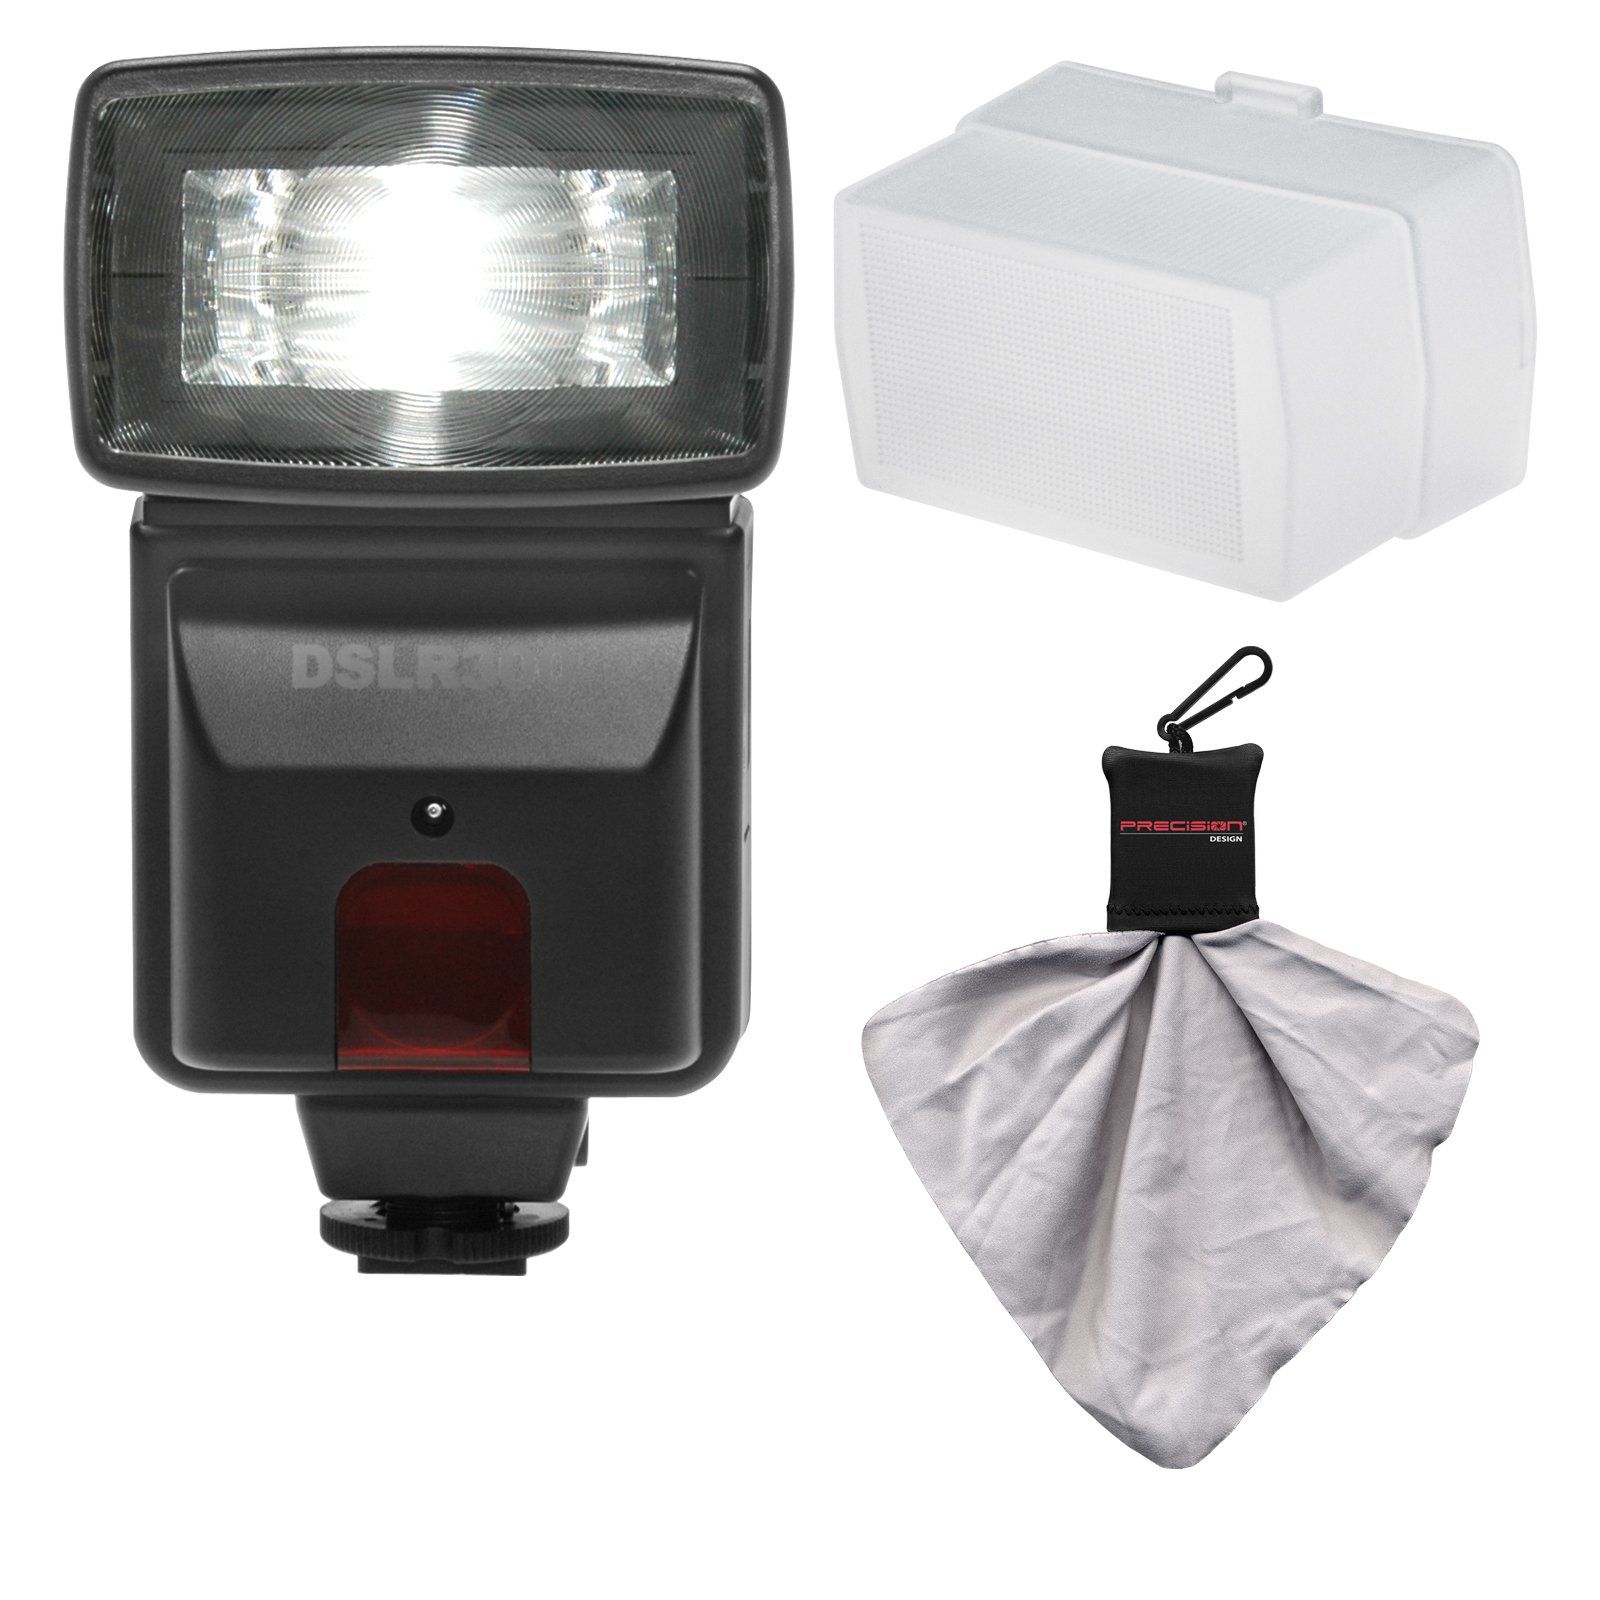 Precision Design DSLR300 High Power Auto Flash with Diffuser + Accessory Kit for Pentax K-3, K-500, K-50, K-30, K-7, K-5 IIs DSLR Cameras